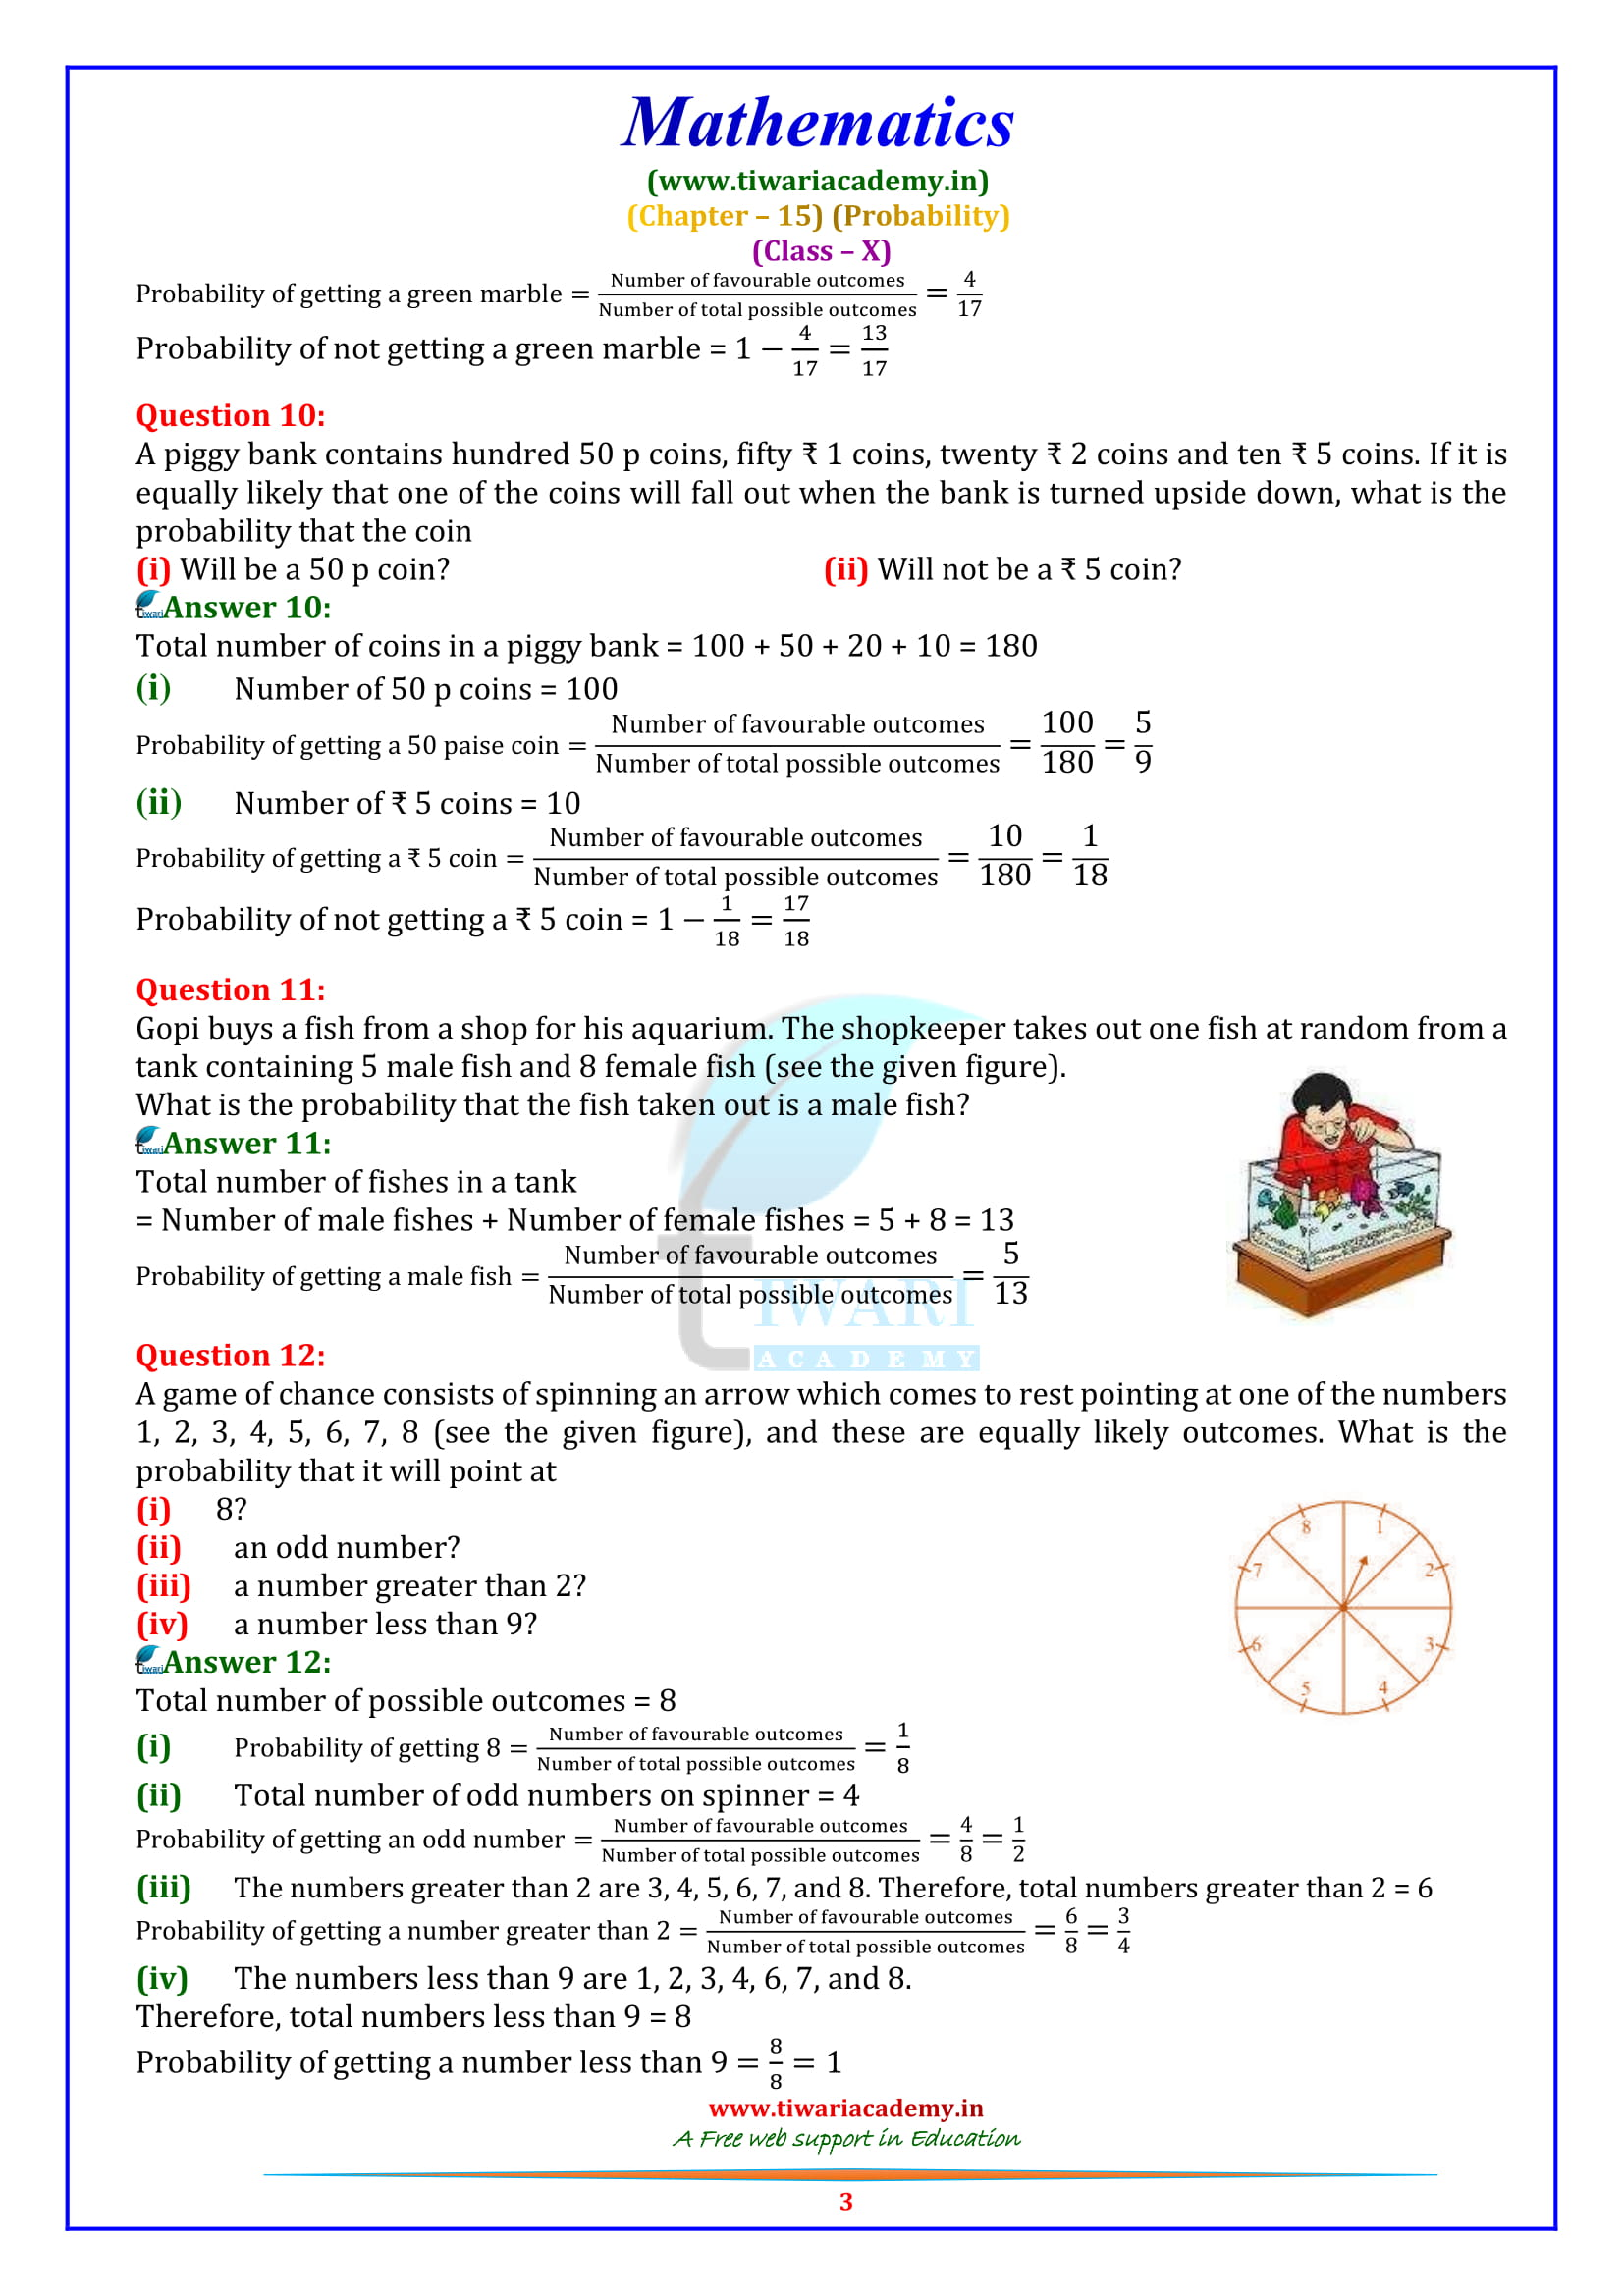 NCERT Solutions for Class 10 Maths Chapter 15 Exercise 15.1 updated for 2018-19